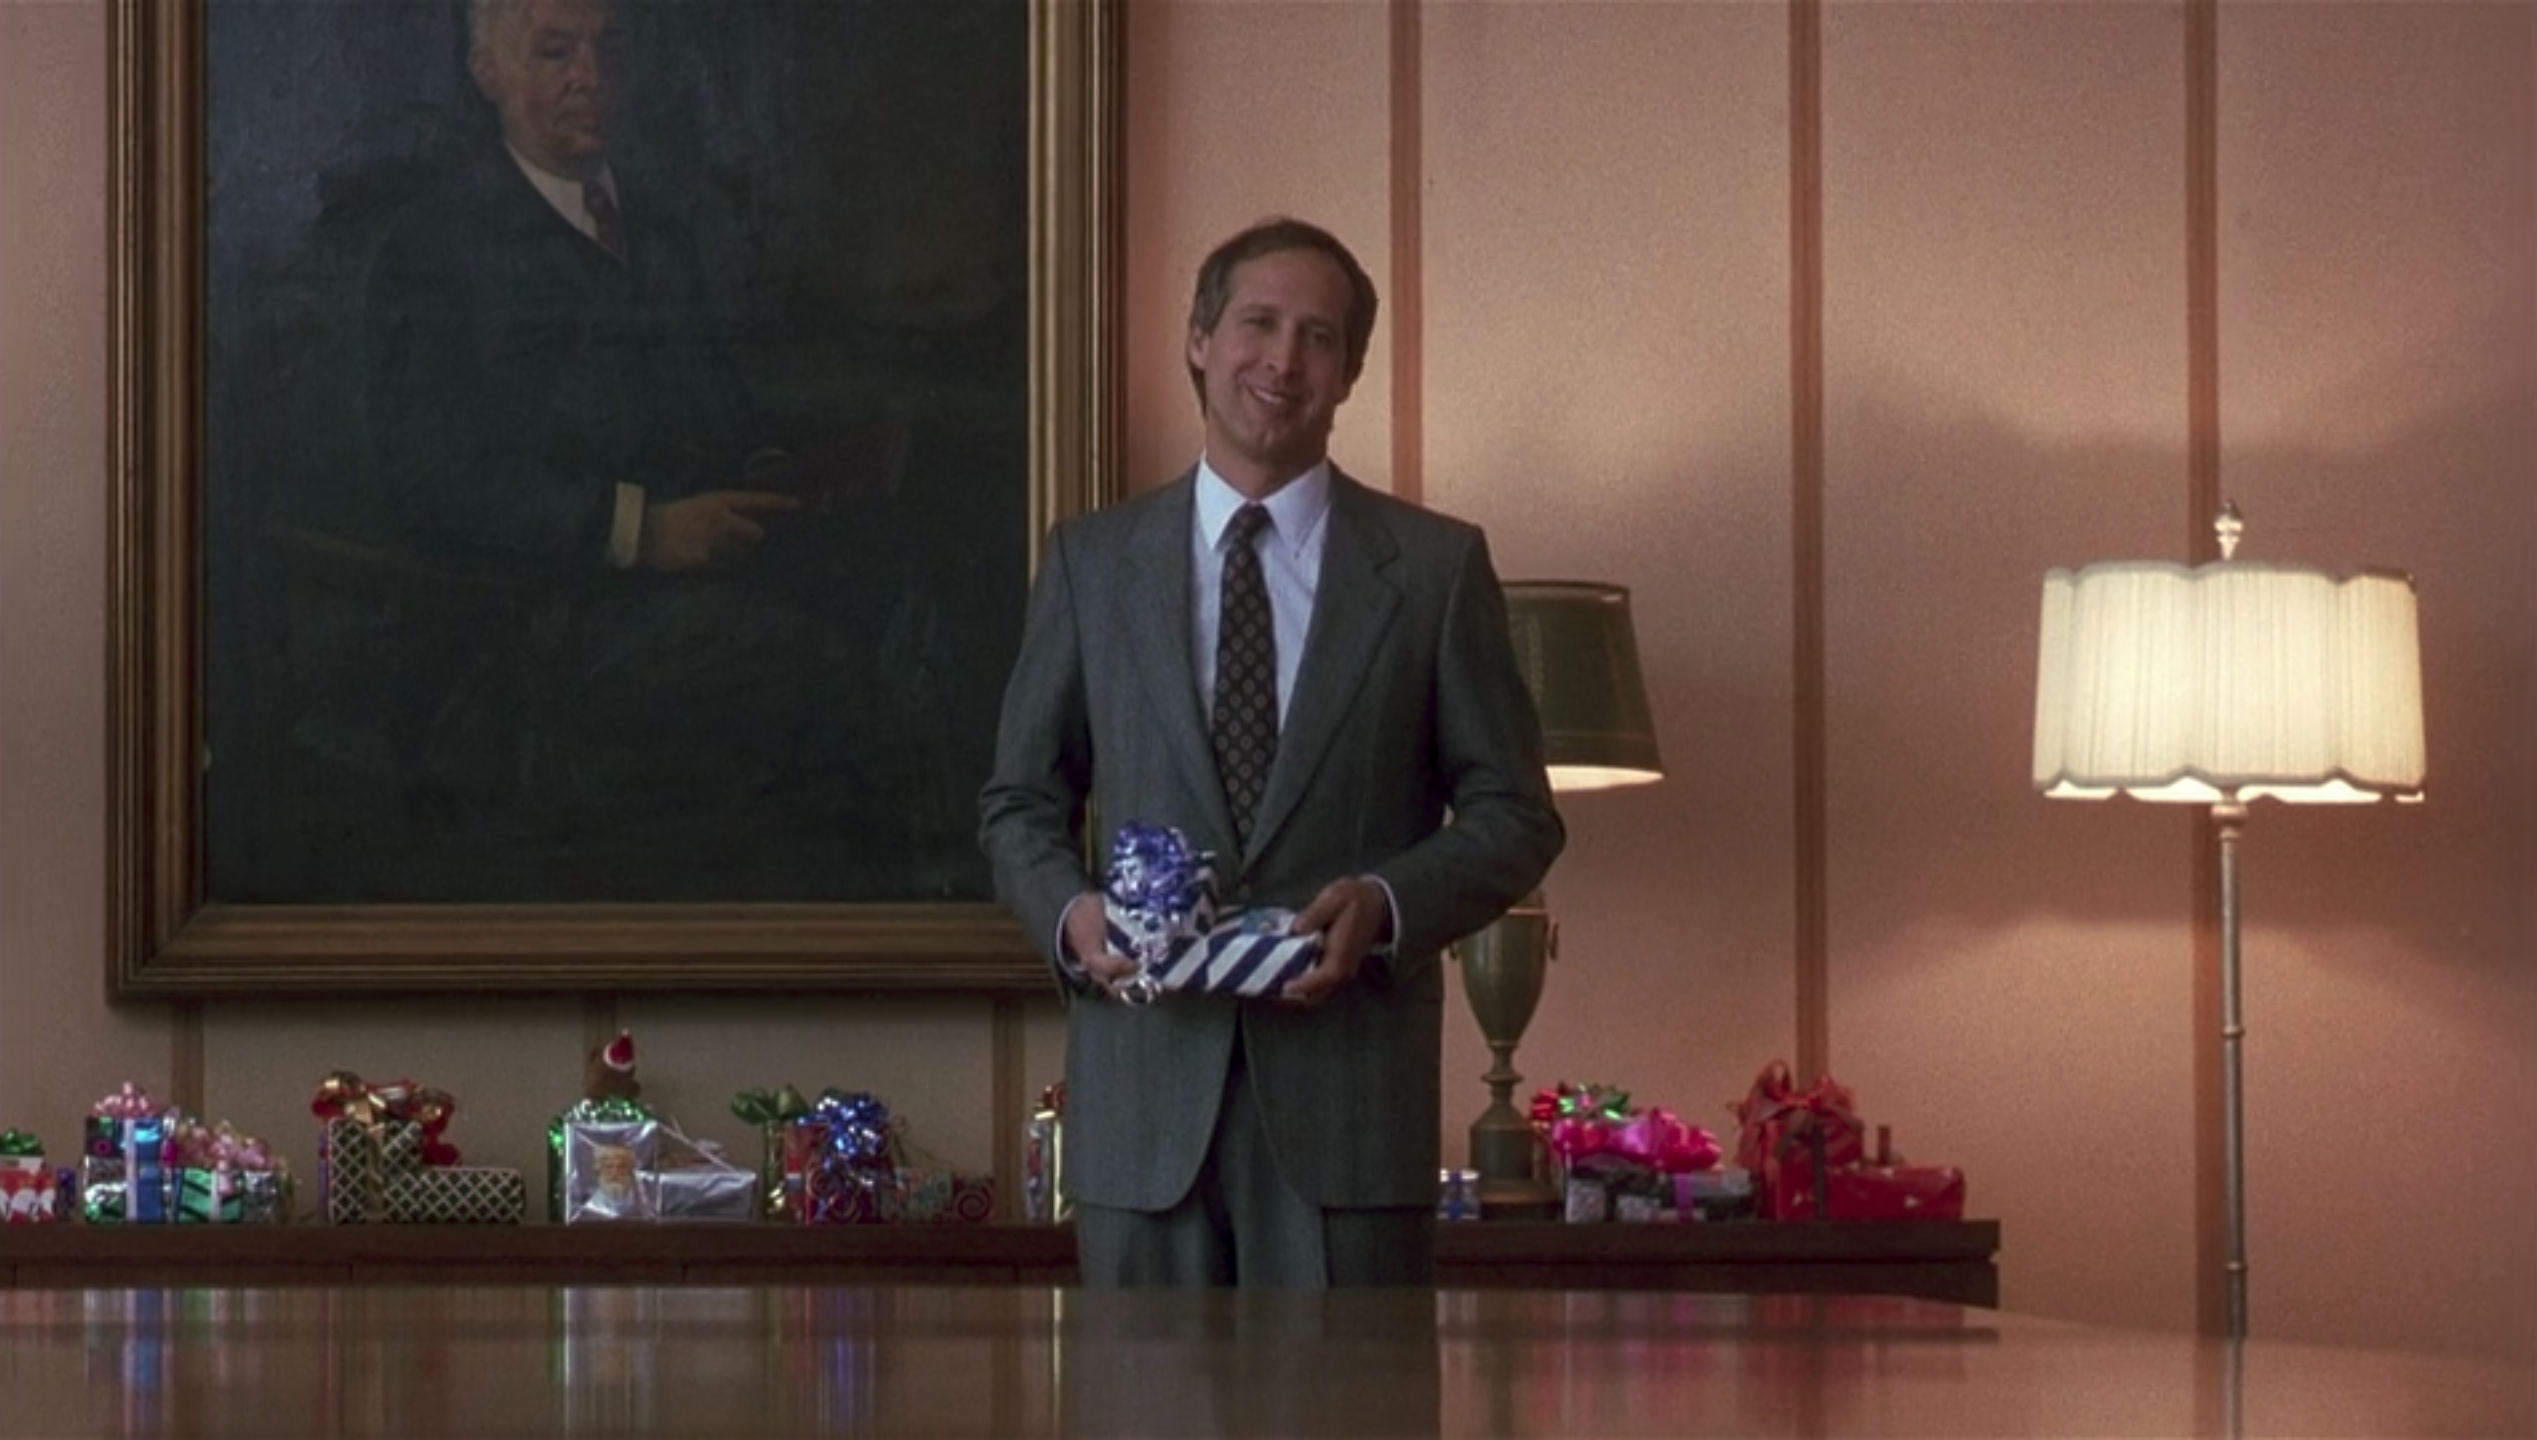 spare 30 Things You Probably Didn't Know About National Lampoon's Christmas Vacation